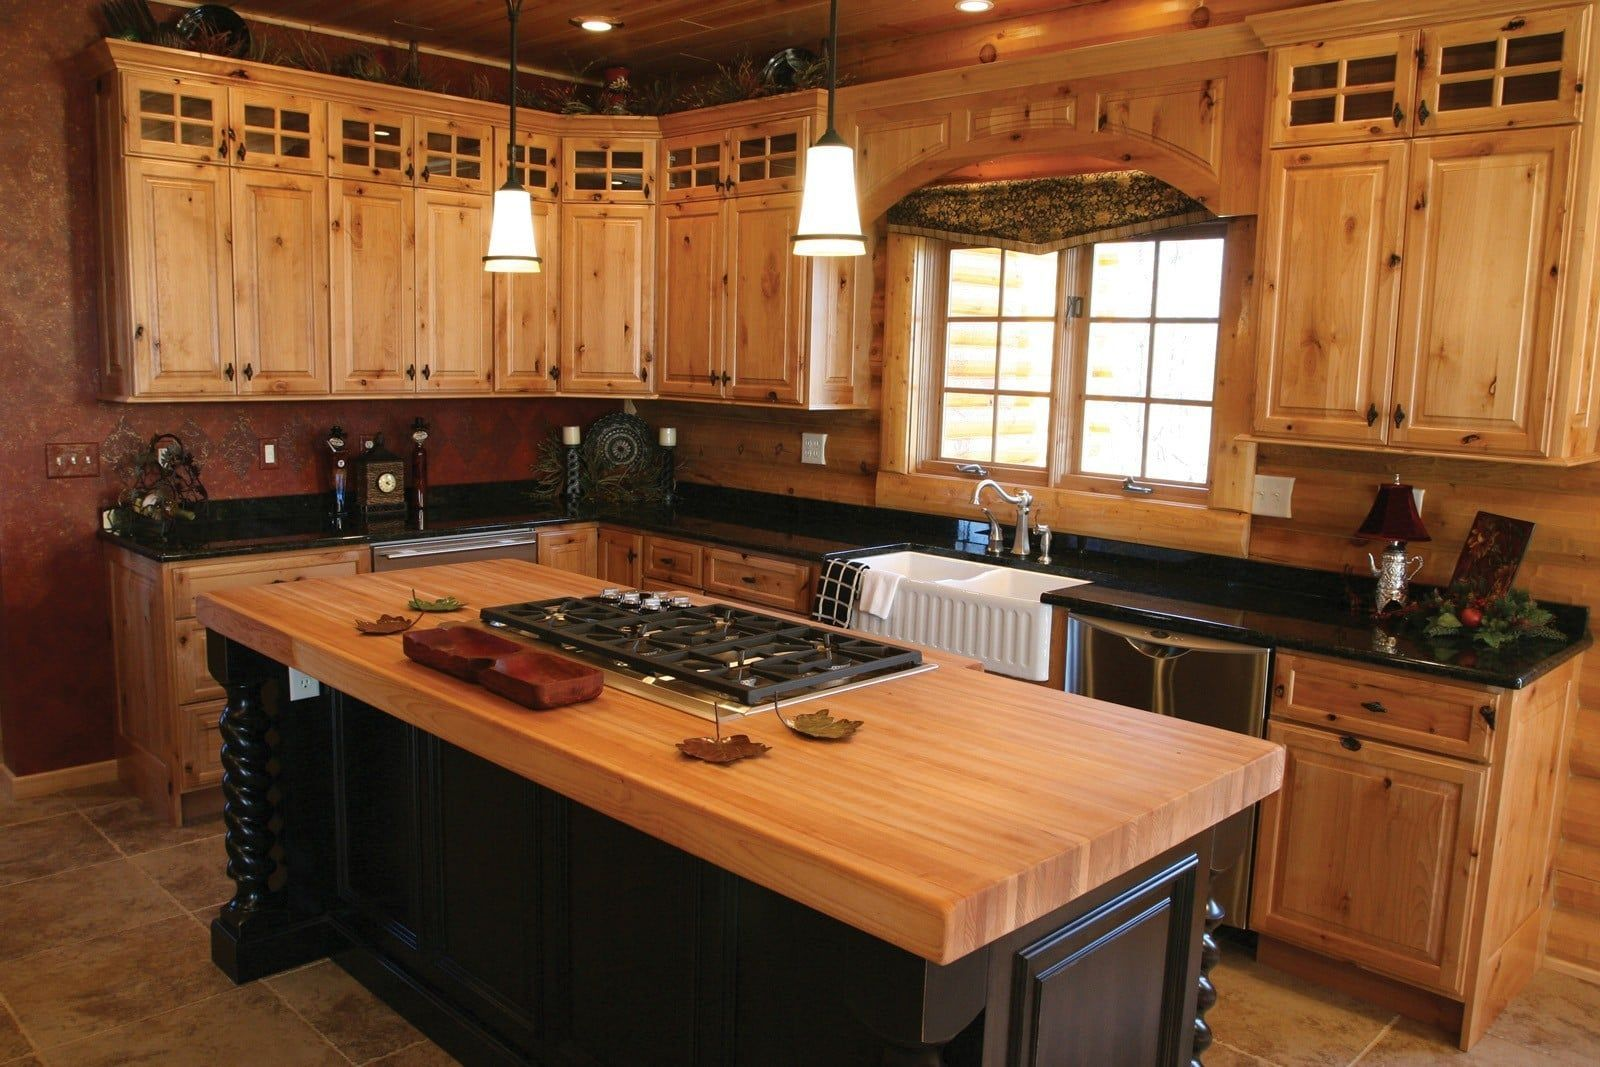 Hickory Kitchen Cabinets For Sale Kitchencabinetsonsale Log Home Kitchens Pine Kitchen Cabinets Rustic Kitchen Cabinets